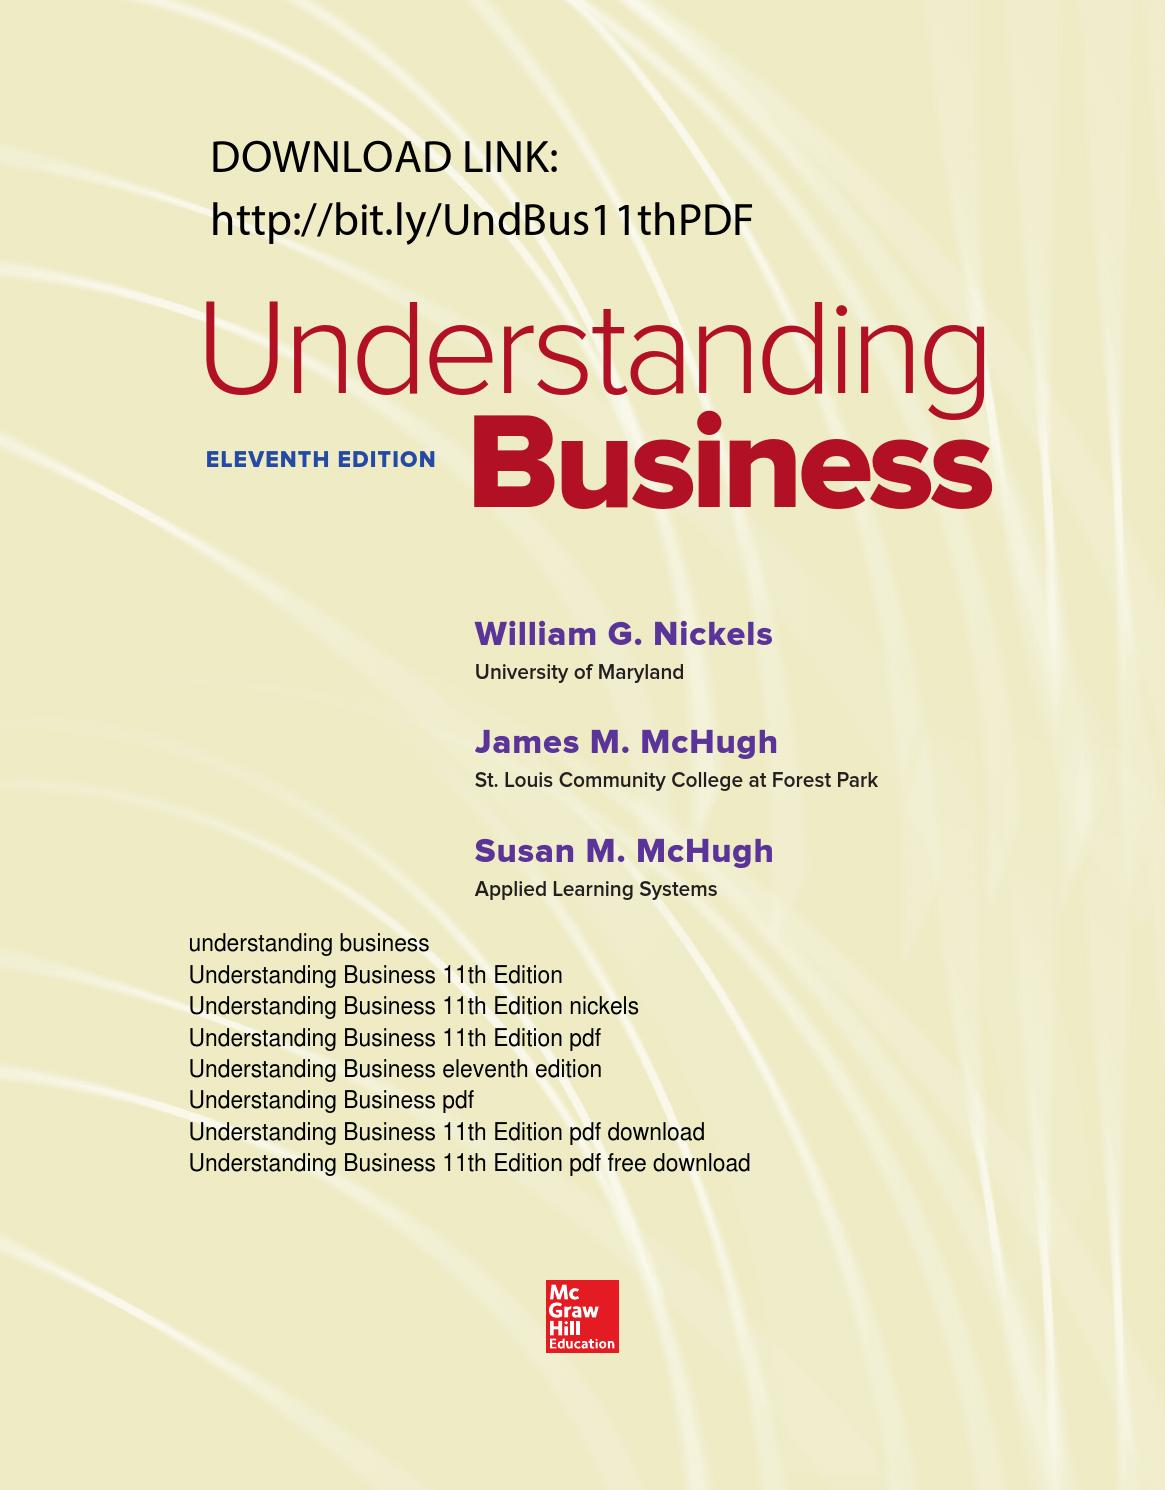 understanding business 11th edition pdf free by jessica w